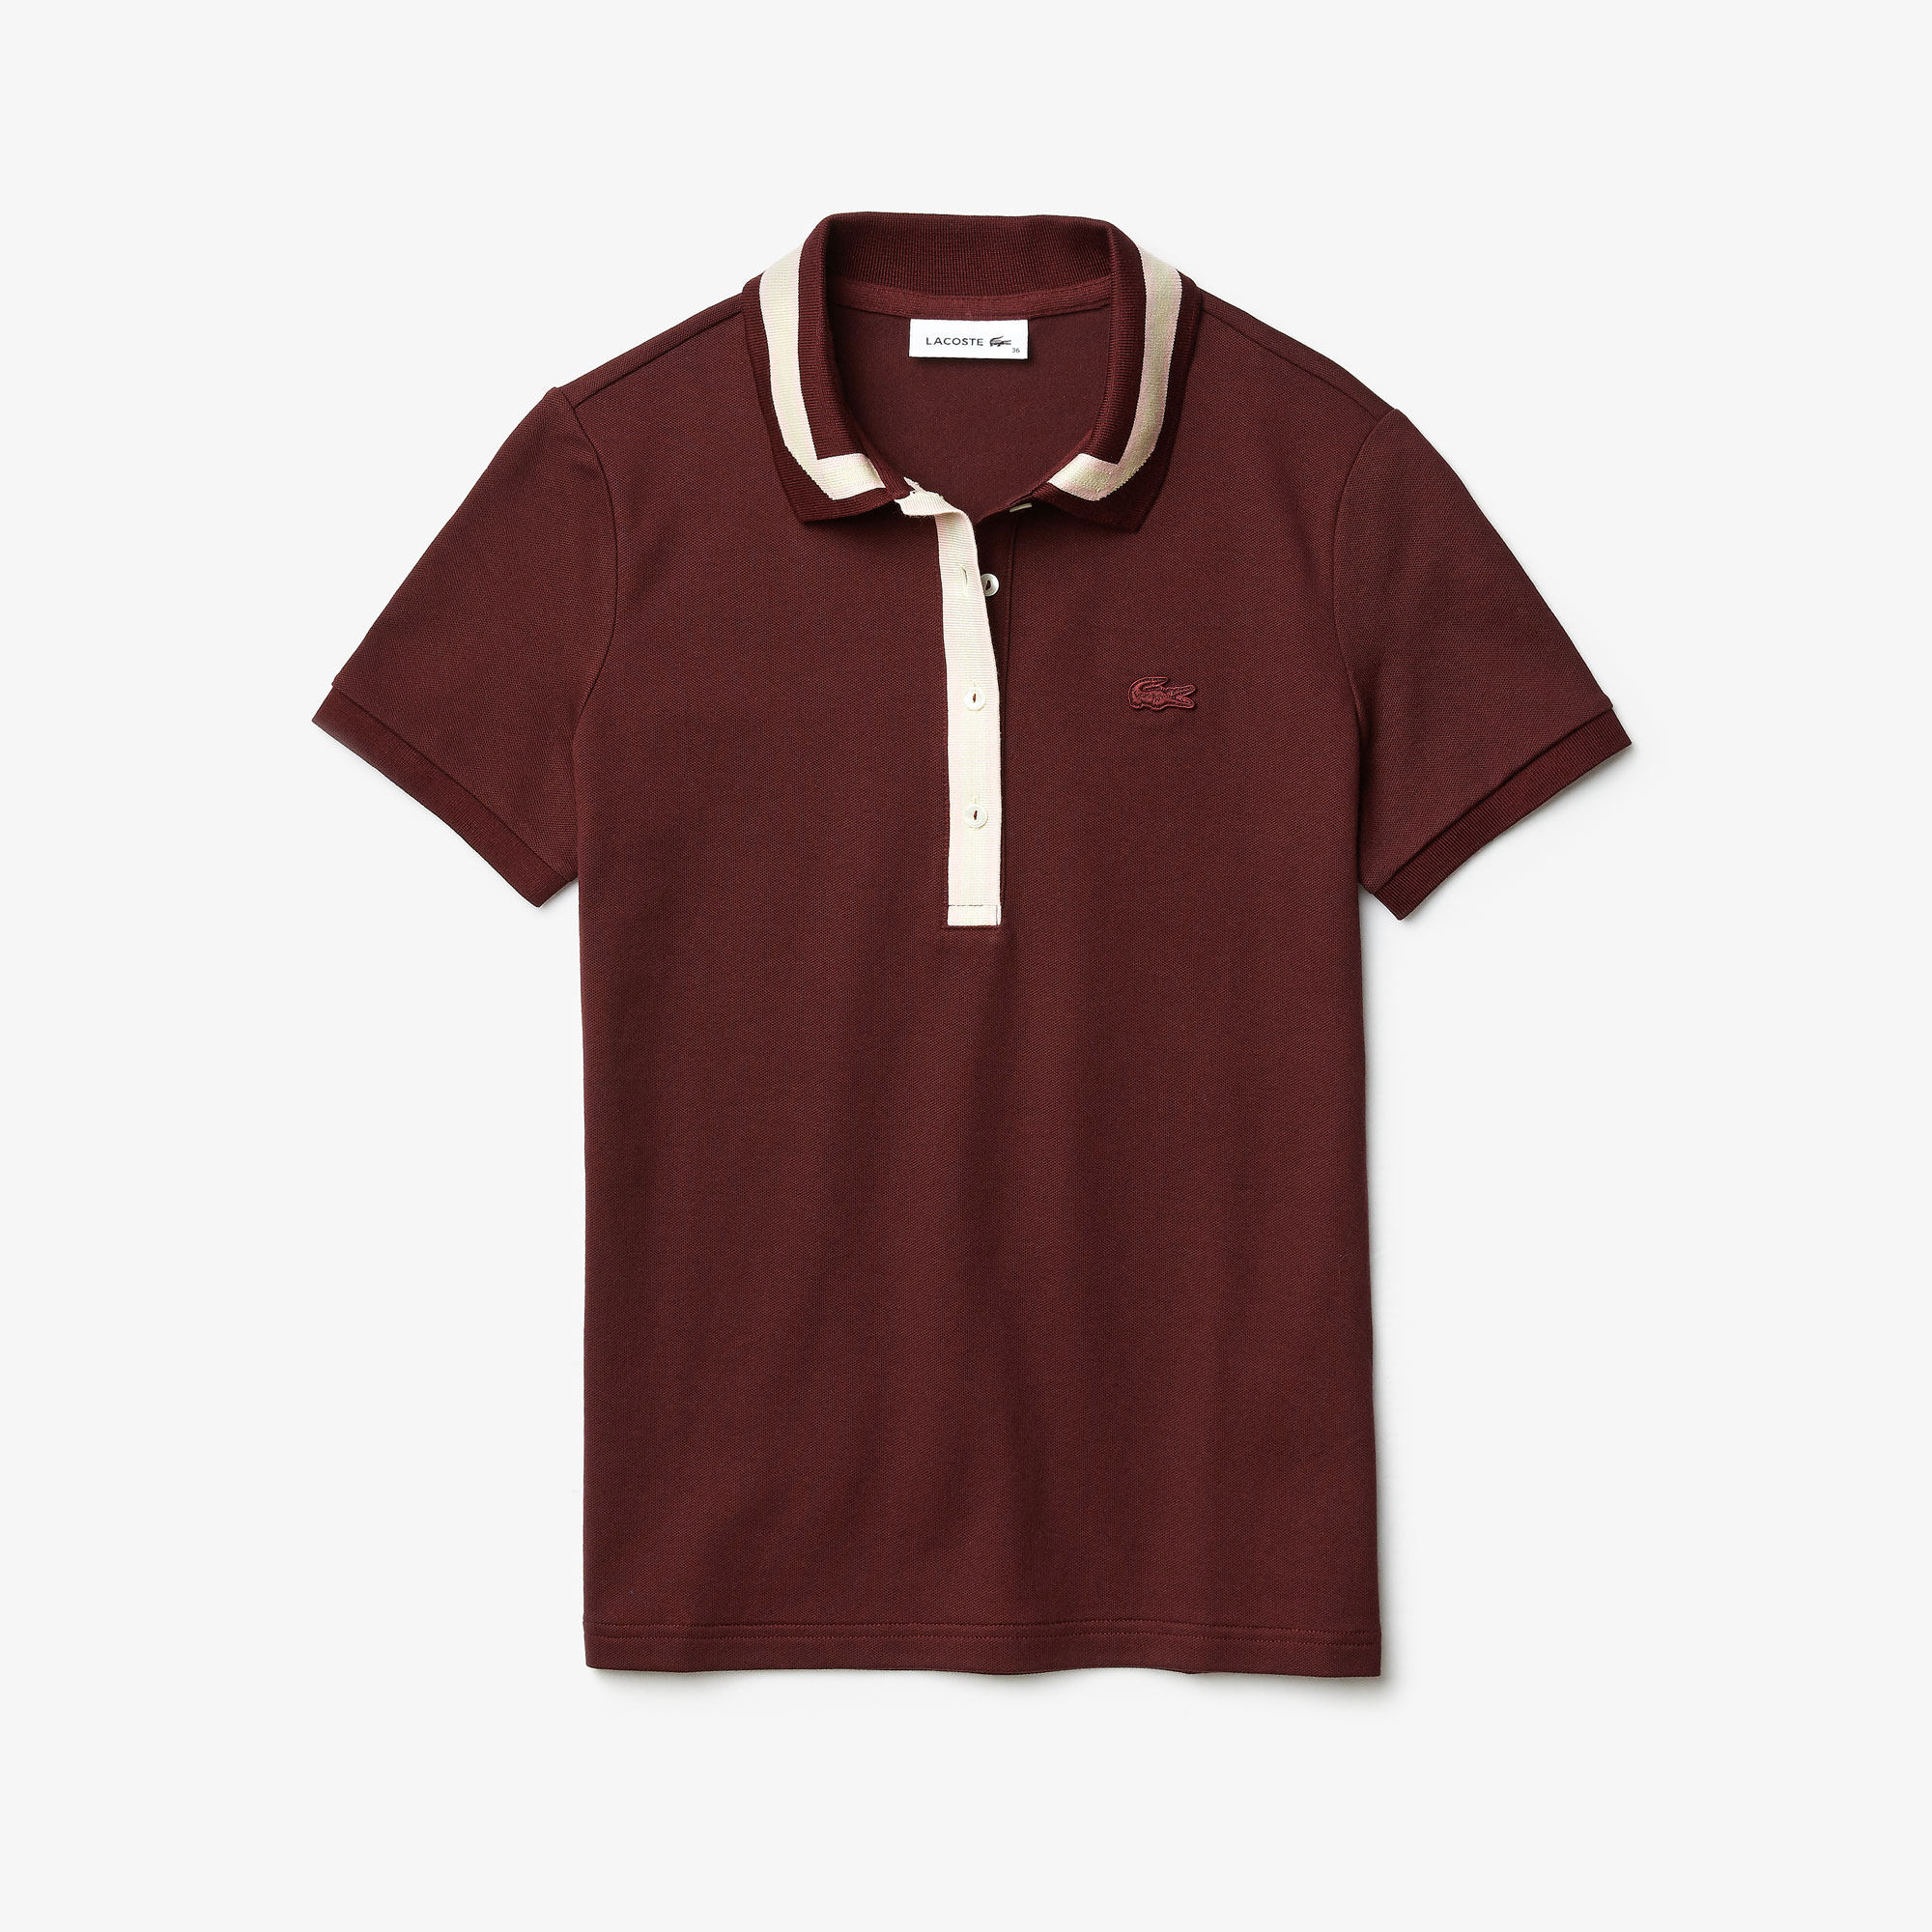 Lacoste Women's Contrast Stretch Cotton Polo Shirt